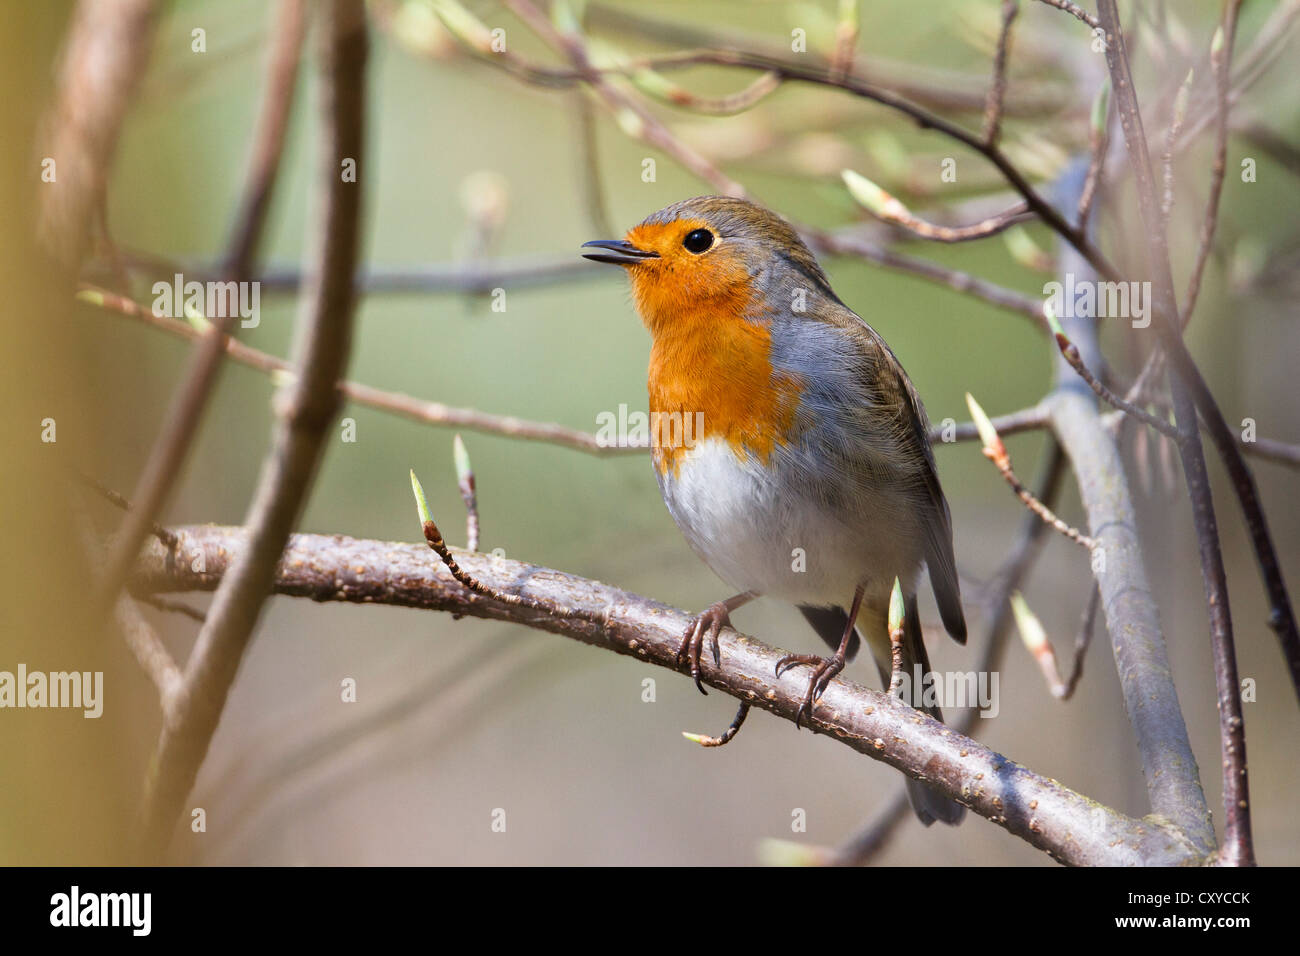 Robin (Erithacus rubecula), singing perched on twig, Bavaria Stock Photo